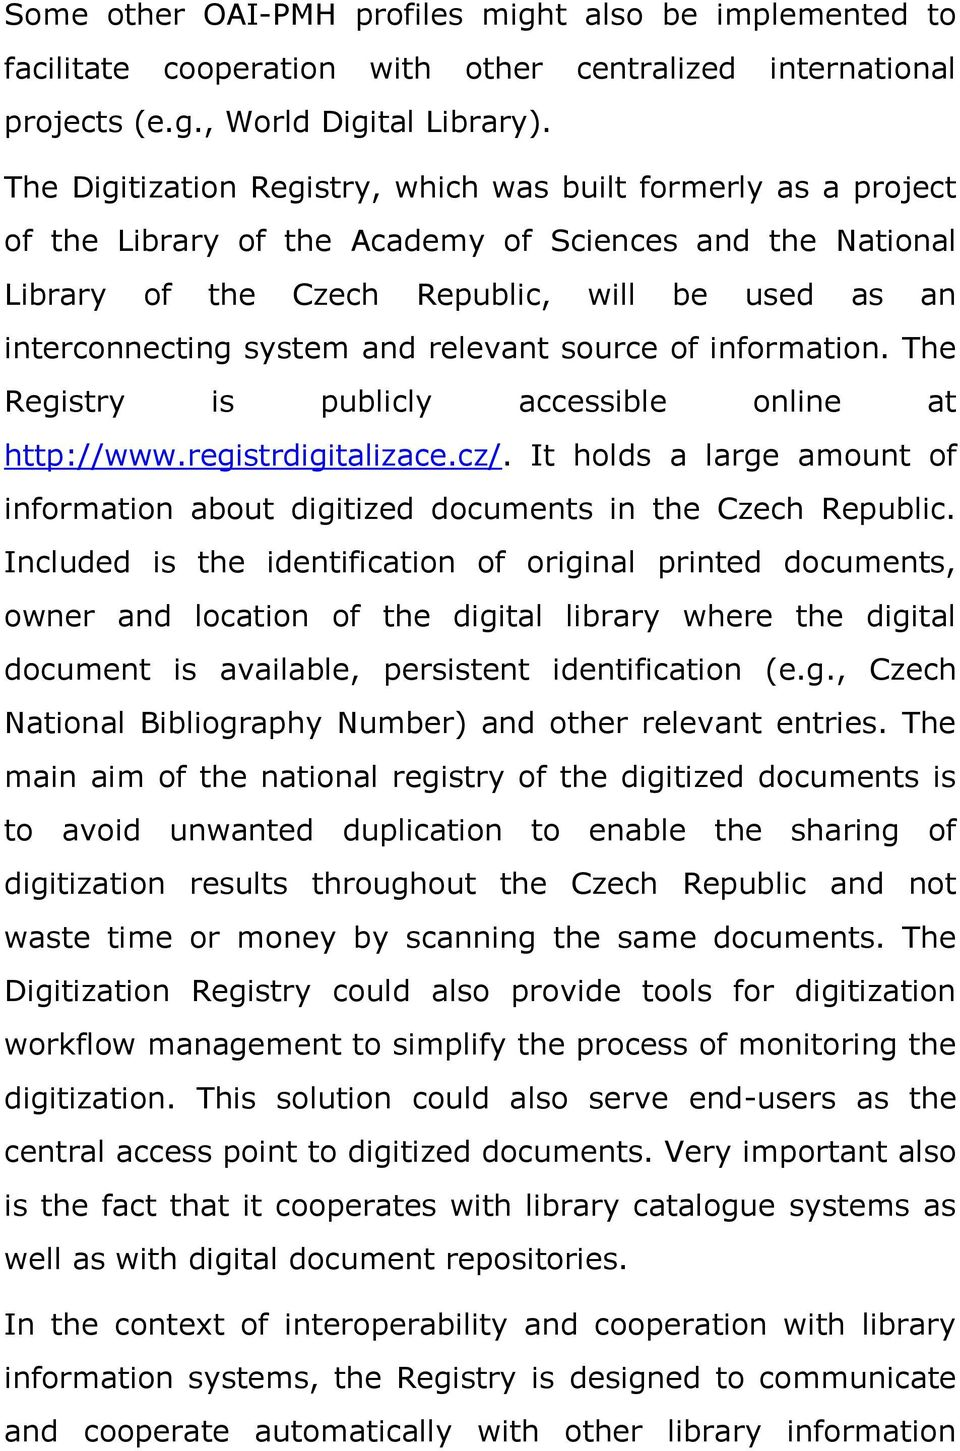 and relevant source of information. The Registry is publicly accessible online at http://www.registrdigitalizace.cz/.